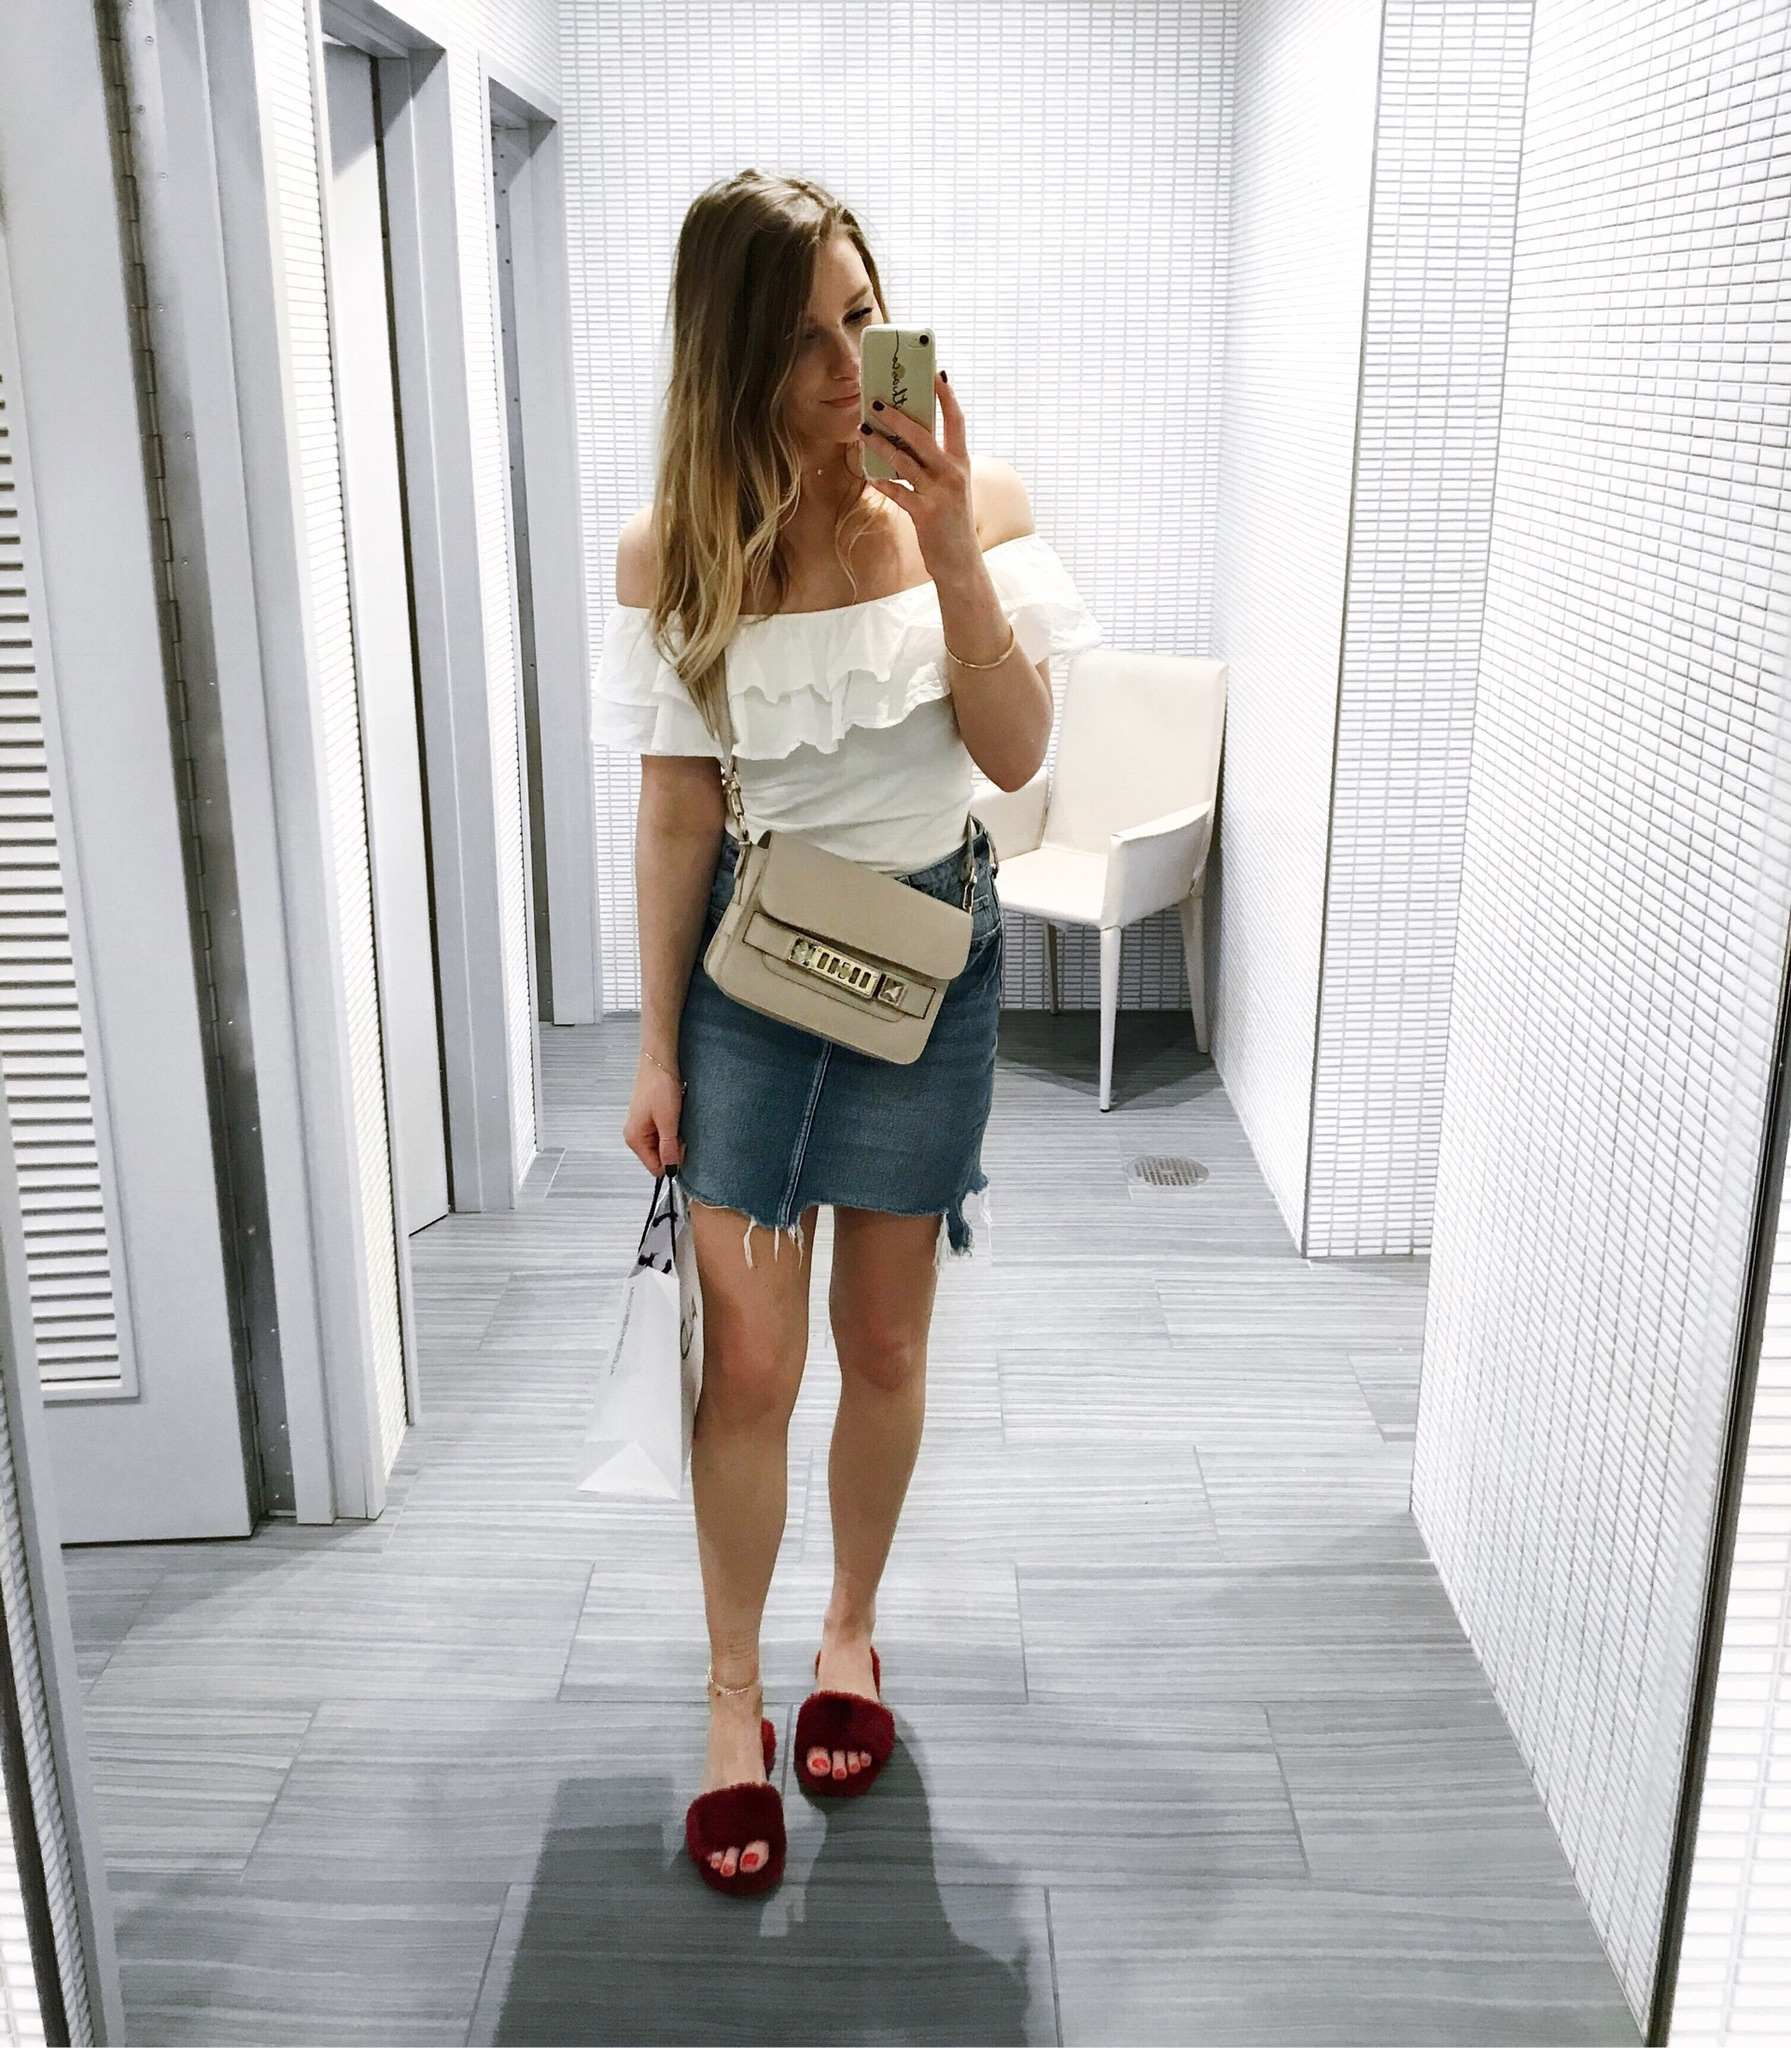 life with aco, miami recap, travel, proenza schouler, off shoulder ruffle top